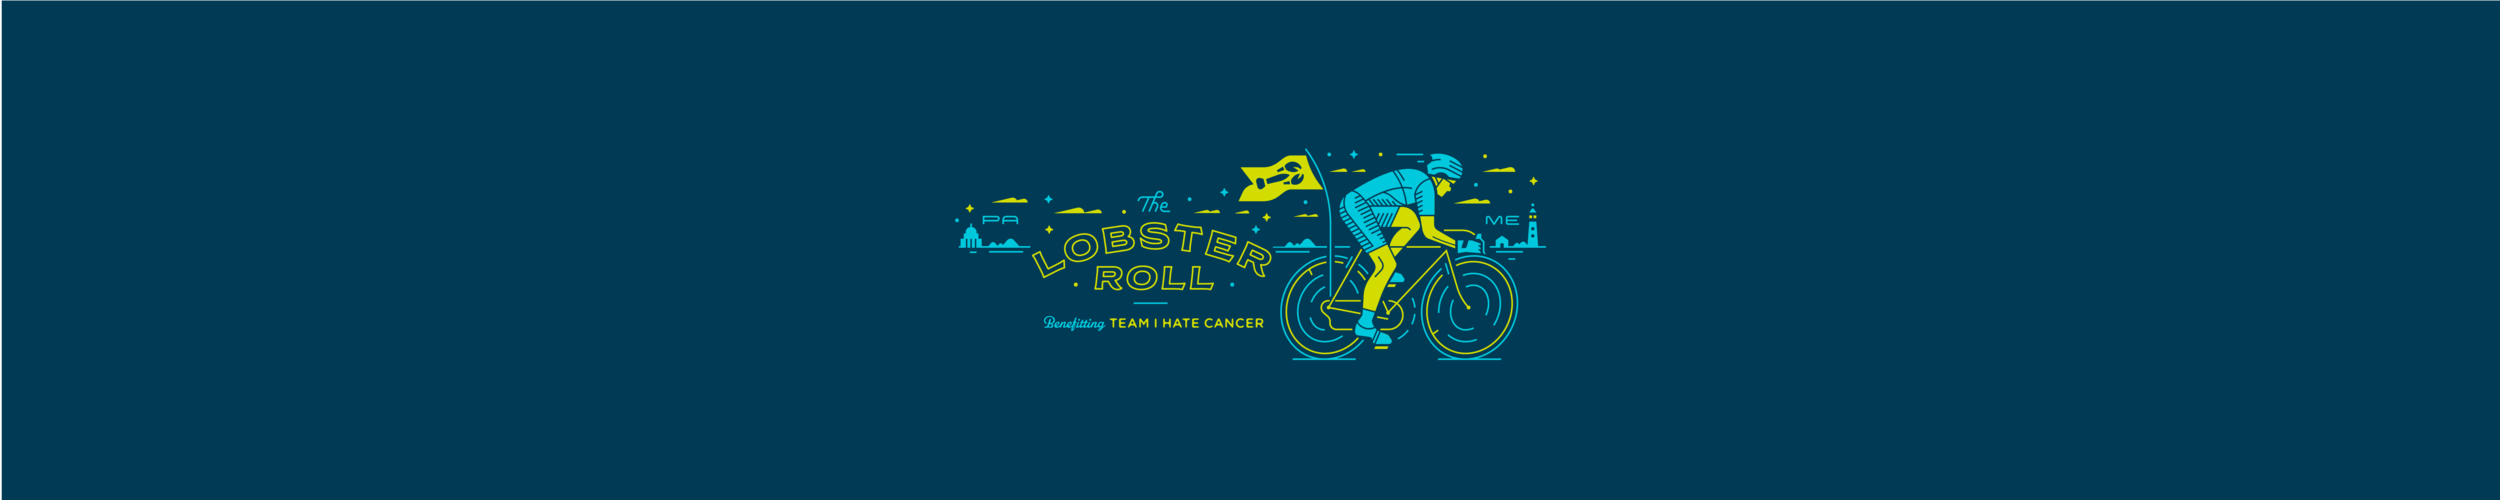 TIHC_Lobster-Roll_Logo_Horizontal3-13-13-13.png